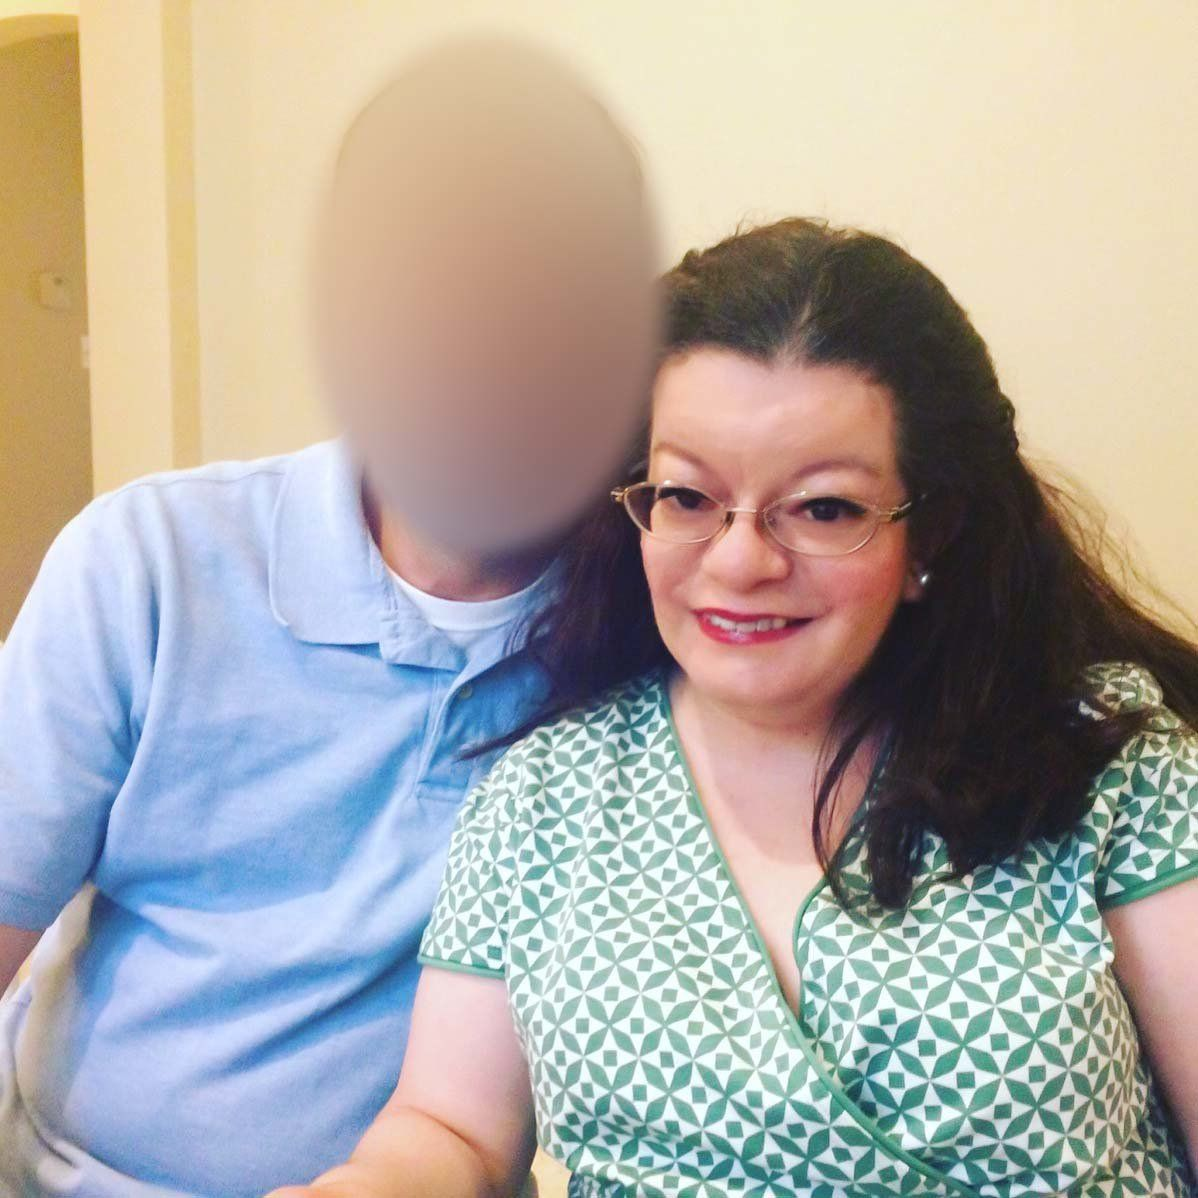 Amanda Auchter and her husband, who has been an FAA employee for 20 years. His face is blurred to protect his identity for fe